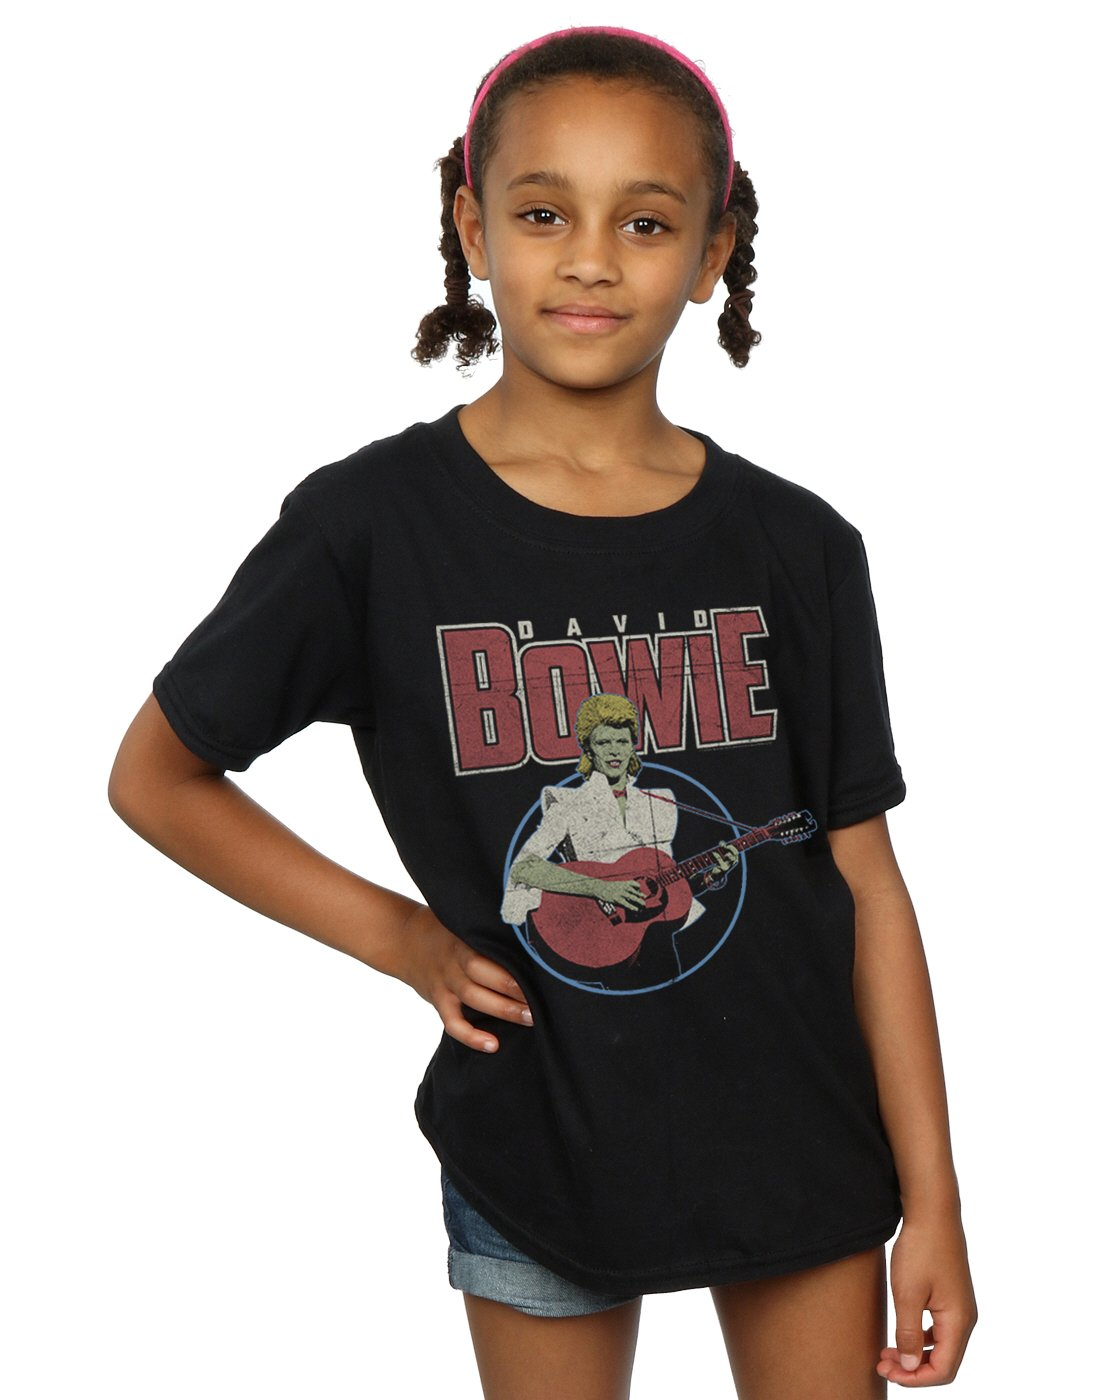 David Bowie Girls Acoustic Bootleg T-Shirt 5-6 Years Black